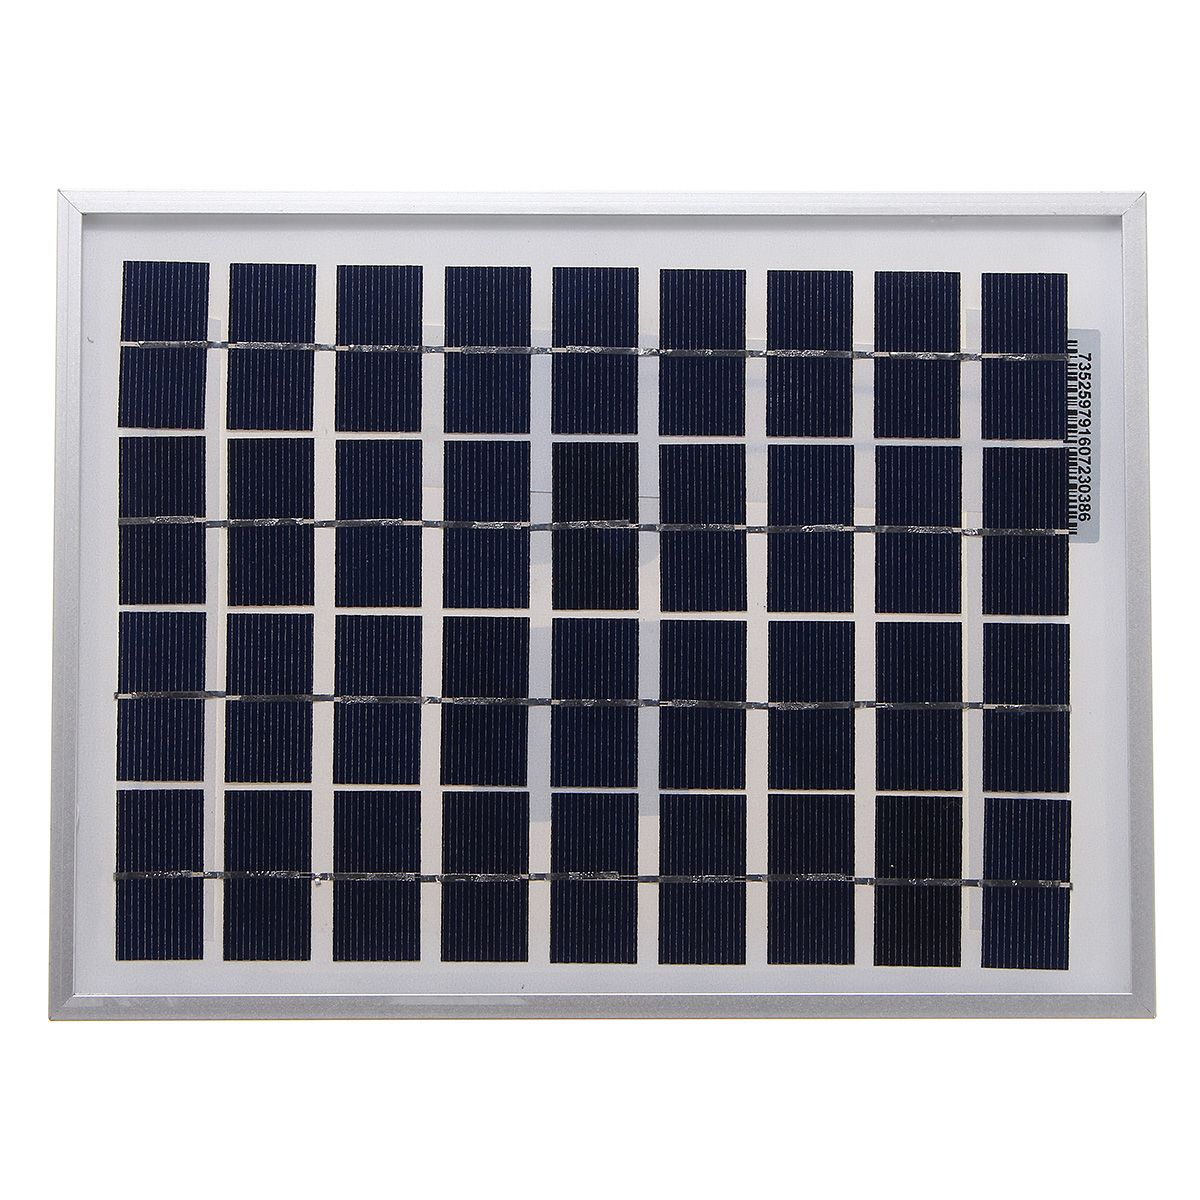 5w 18v Polycrystalline Solar Panel For 12v Battery Solar Panels Outdoor Panels 12v Solar Panel